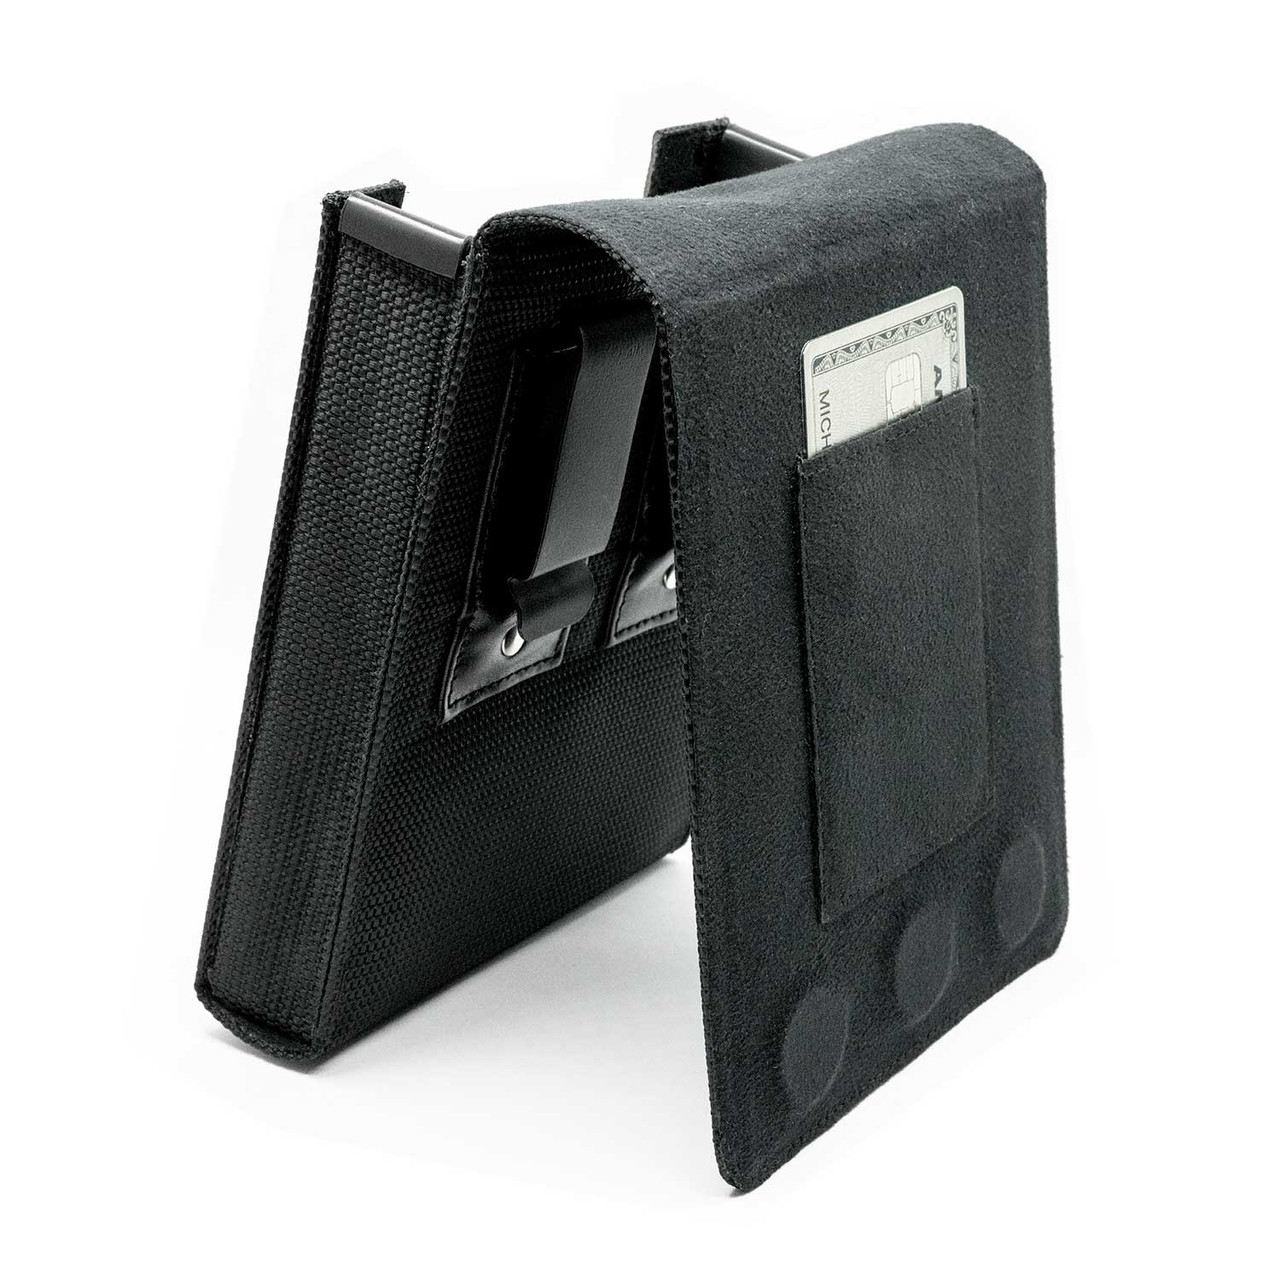 Walther PPK Holster